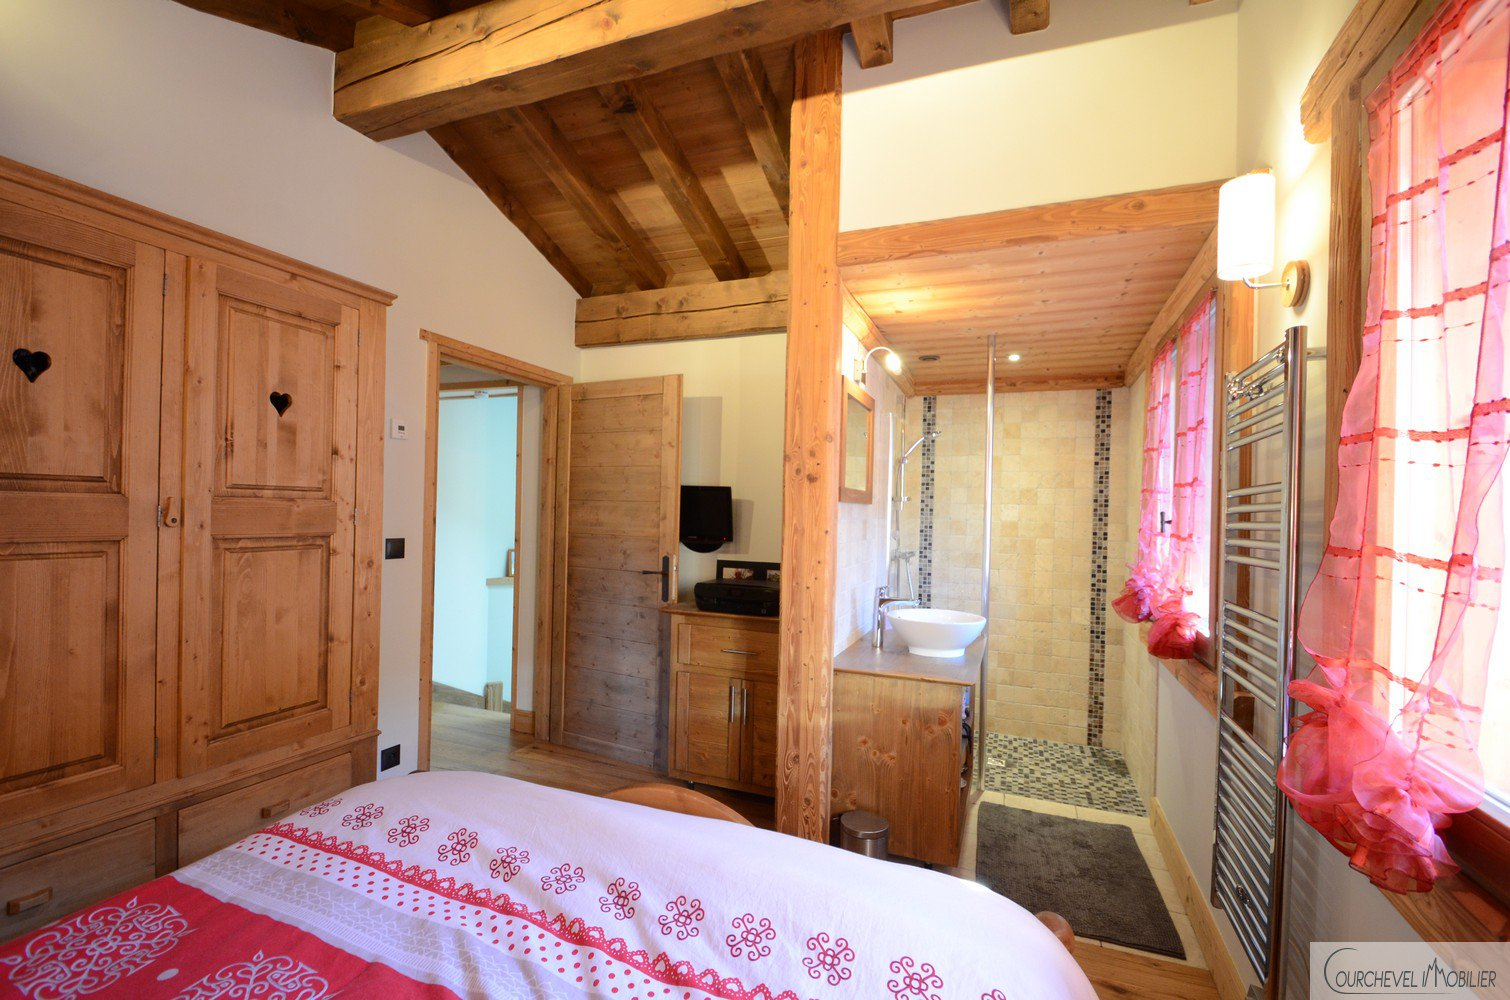 Huur Chalet - Courchevel Le Praz